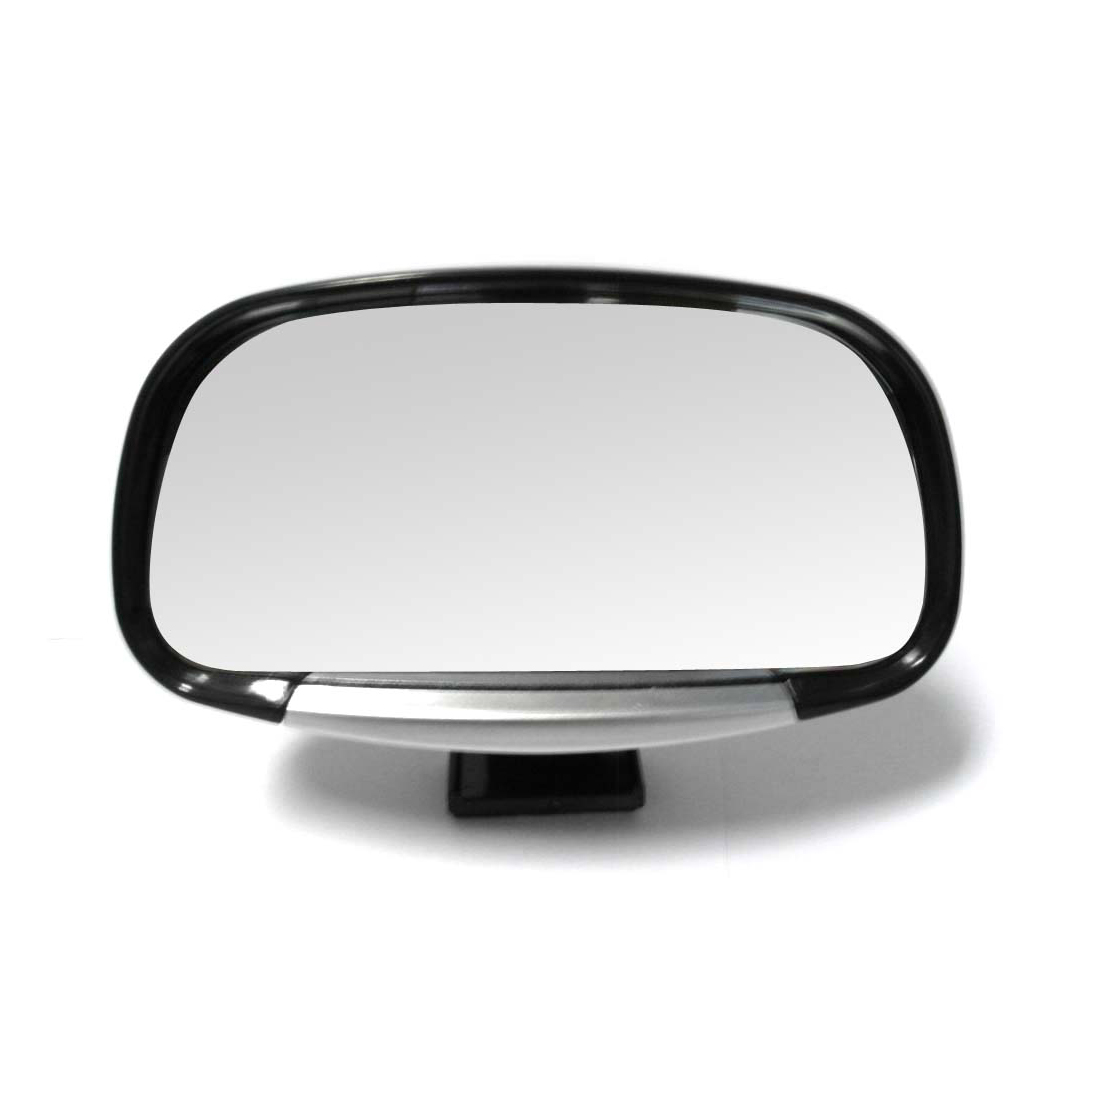 Revolving Convex Car Rear View Blind Spot Mirror Black (3R-081)